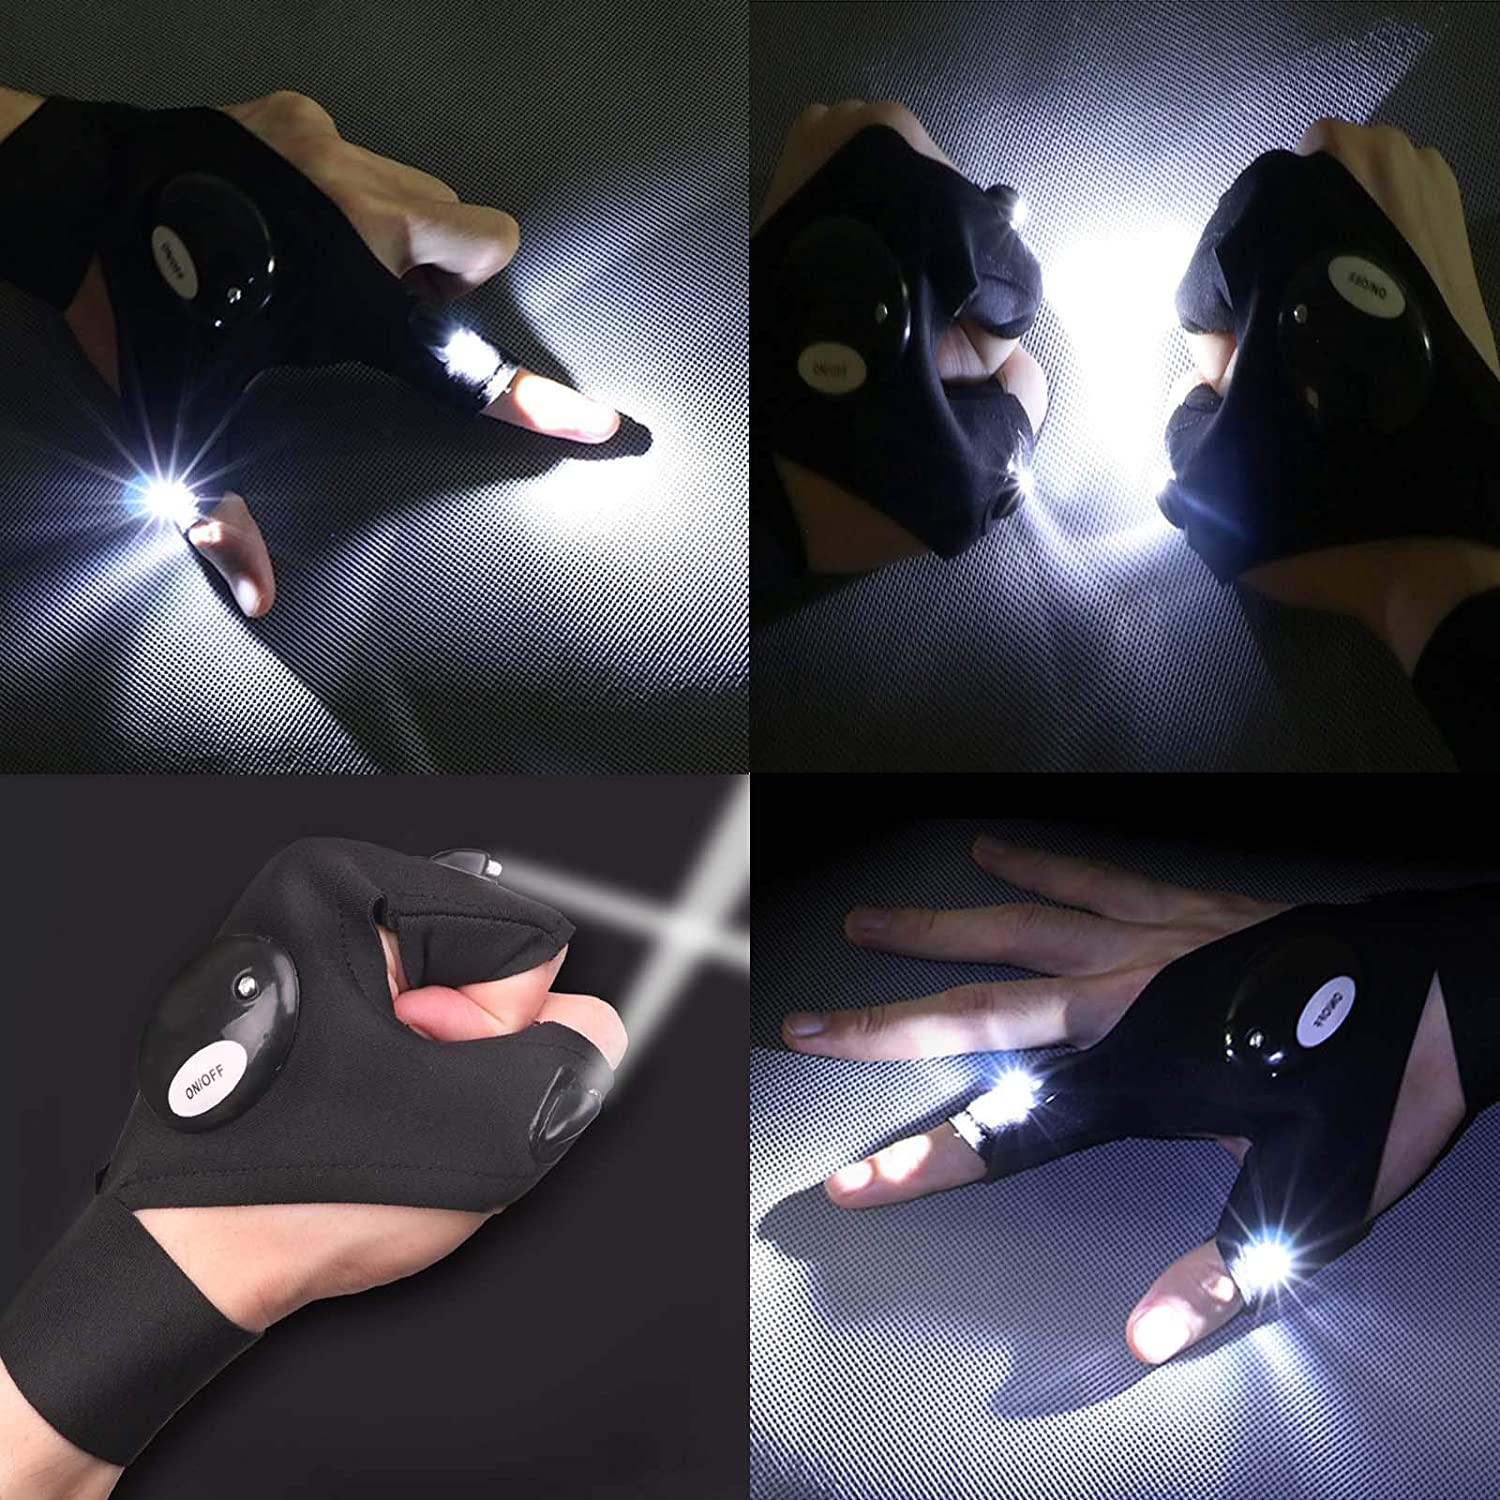 LED Gloves for Men//Women Gadgets Gifts Hands Free Flashlights for Working in Darkness Places Fishing Repair Running Camping Hiking Elegital LED Flashlights Gloves